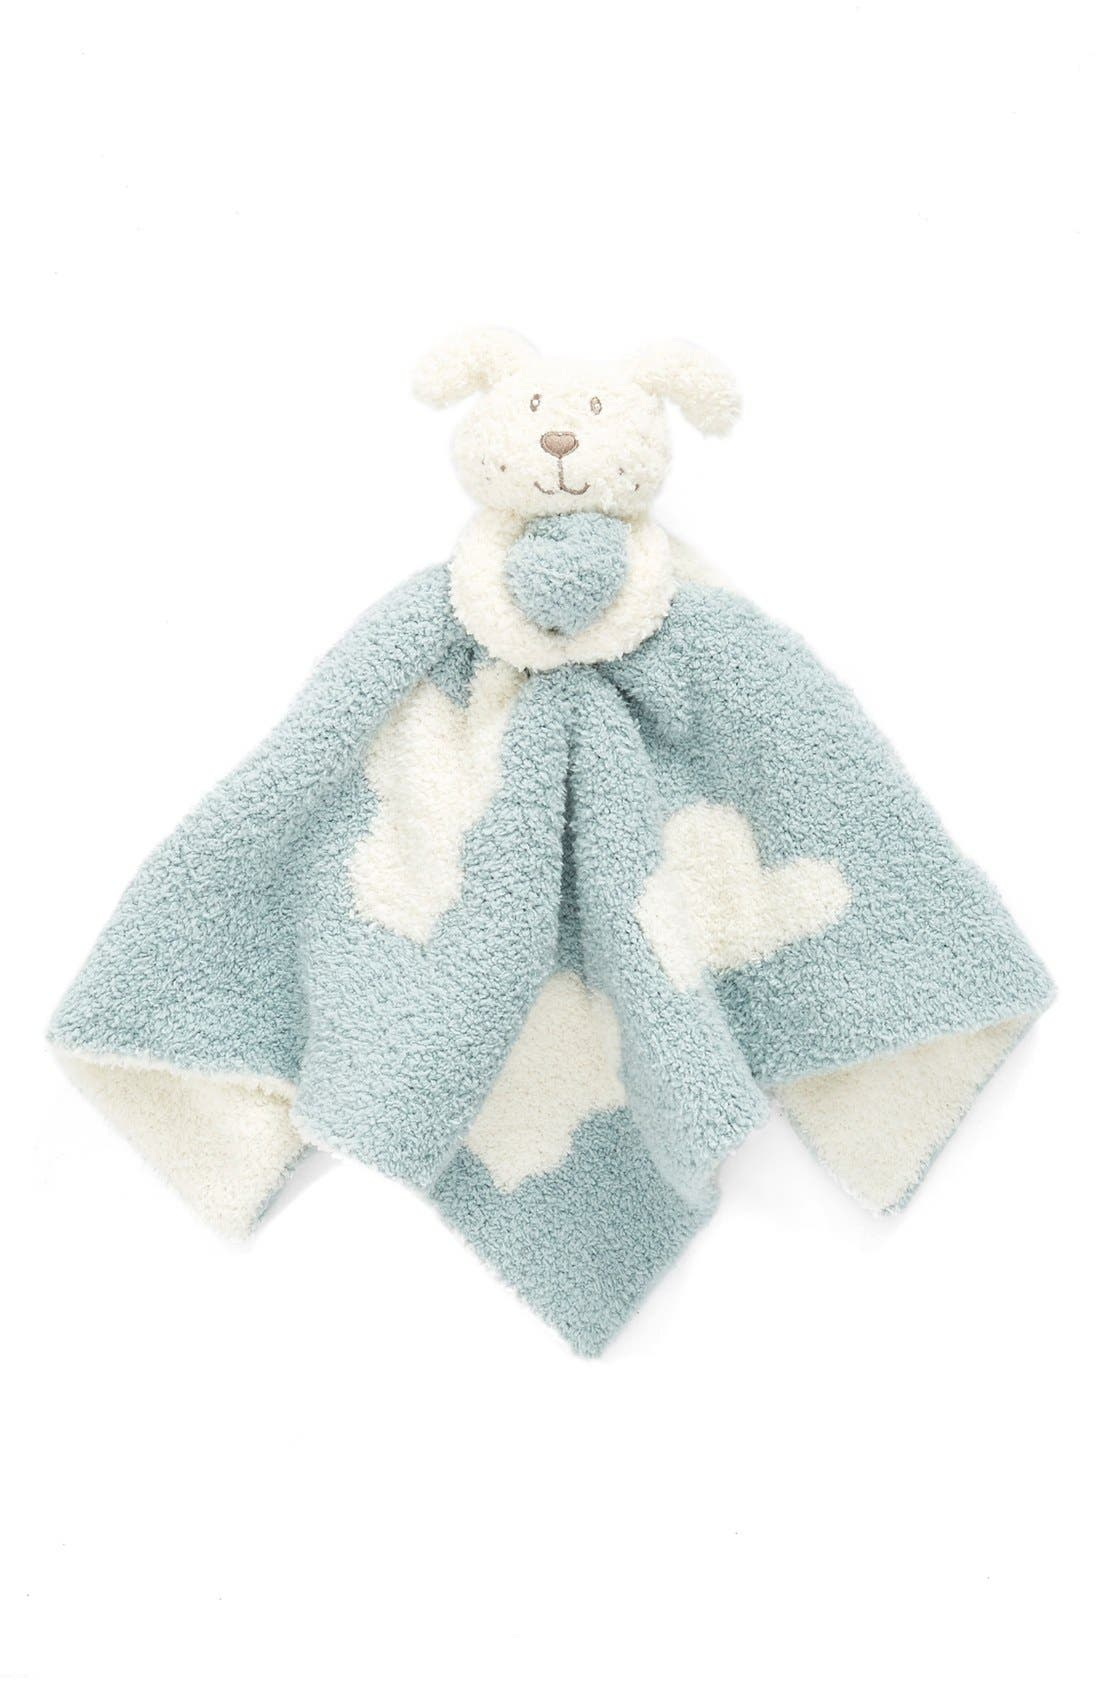 'Cloud Buddie' Blanket,                         Main,                         color, Blue Wave/ Cream